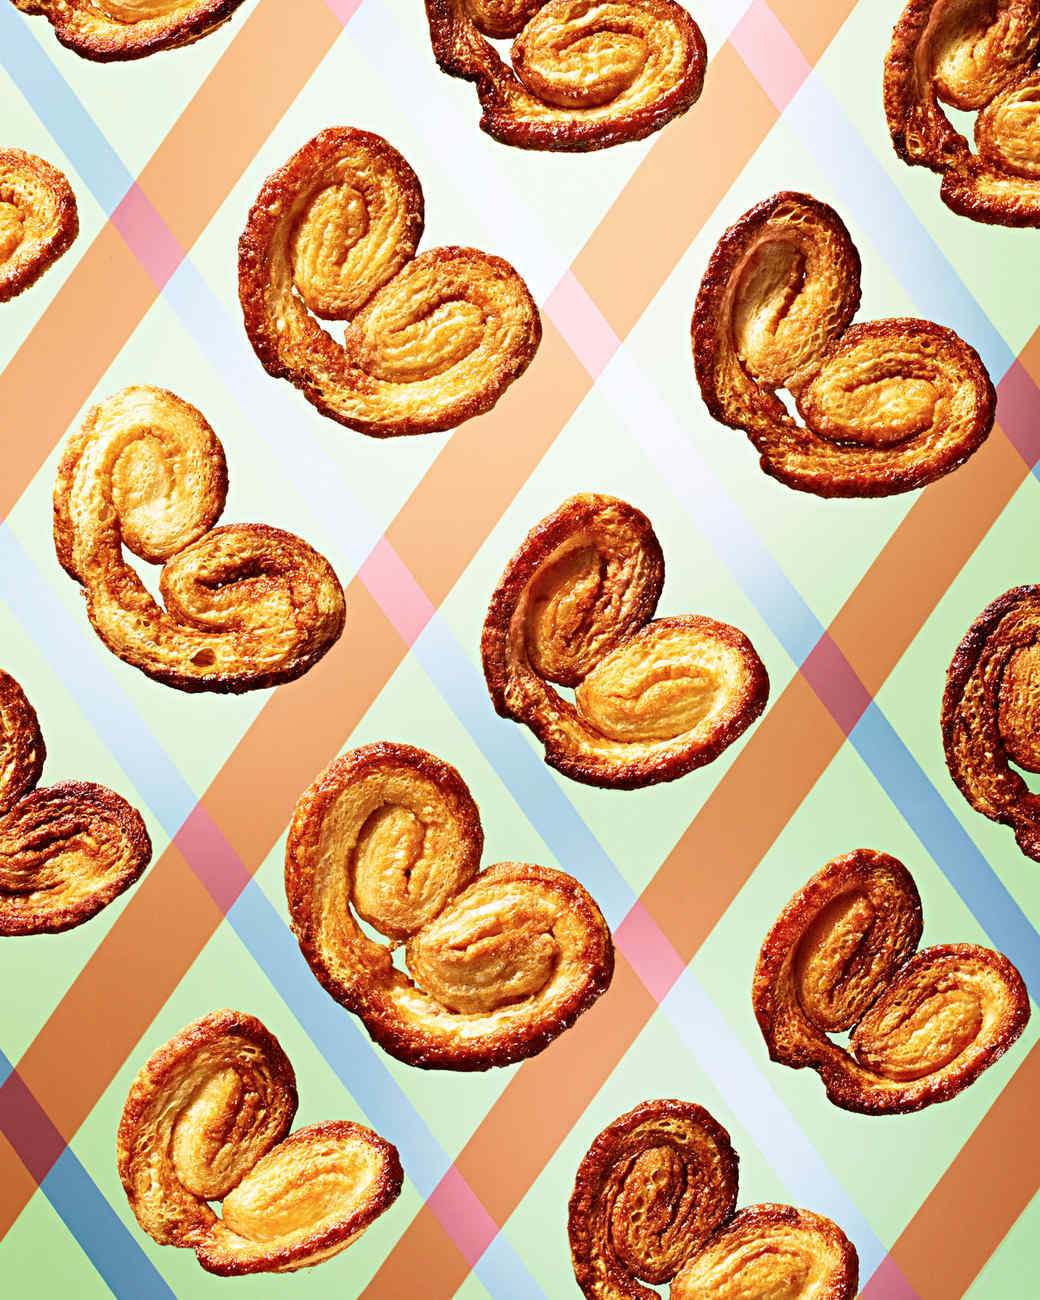 ... spiced palmiers recipes dishmaps spiced palmiers recipes dishmaps